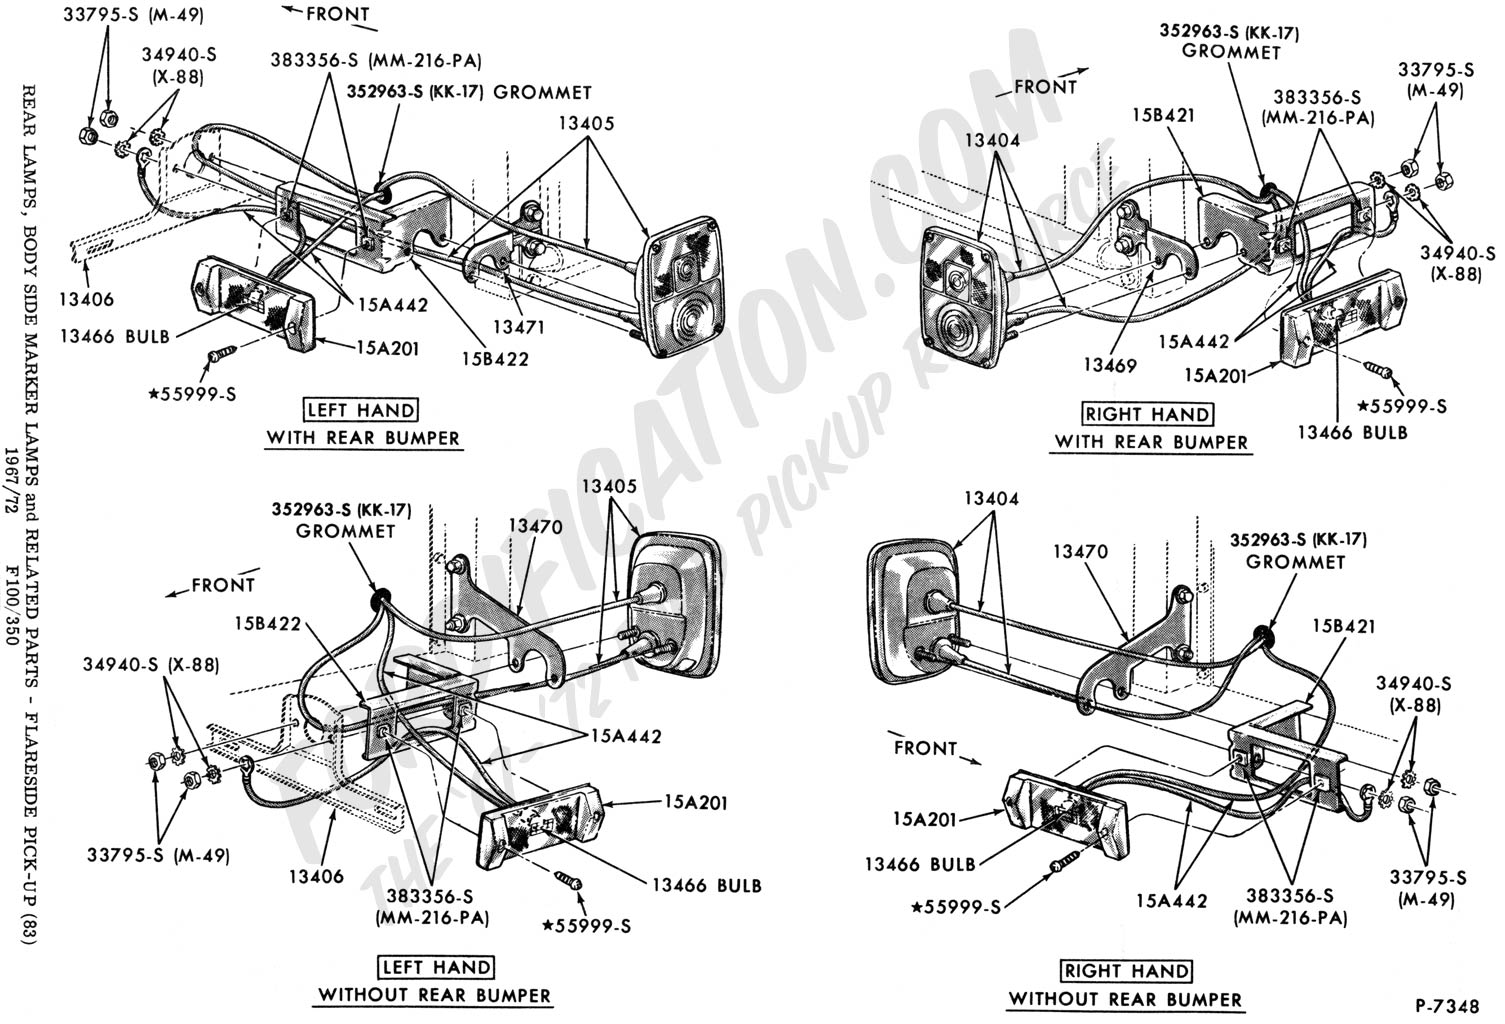 Ford Truck Technical Drawings and Schematics - Section I ... on 1968 ford steering column sensor, 1968 steering box diagram, 1968 ford steering column repair, 1965 riviera steering column diagram, 1969 camaro power steering diagram, ford power steering diagram, 66 ford mustang steering diagram, 1968 mustang steering column diagram, 1968 ford radio schematic, 1967 mustang steering column diagram, 1968 chevelle steering column diagram, ford mustang wiring diagram, ford steering parts diagram, 68 chevelle steering column diagram, 1970 nova steering column diagram, 1973 f100 steering diagram, 67 c10 column diagram, 1965 econoline shift column diagram, 1967 mustang power steering diagram,